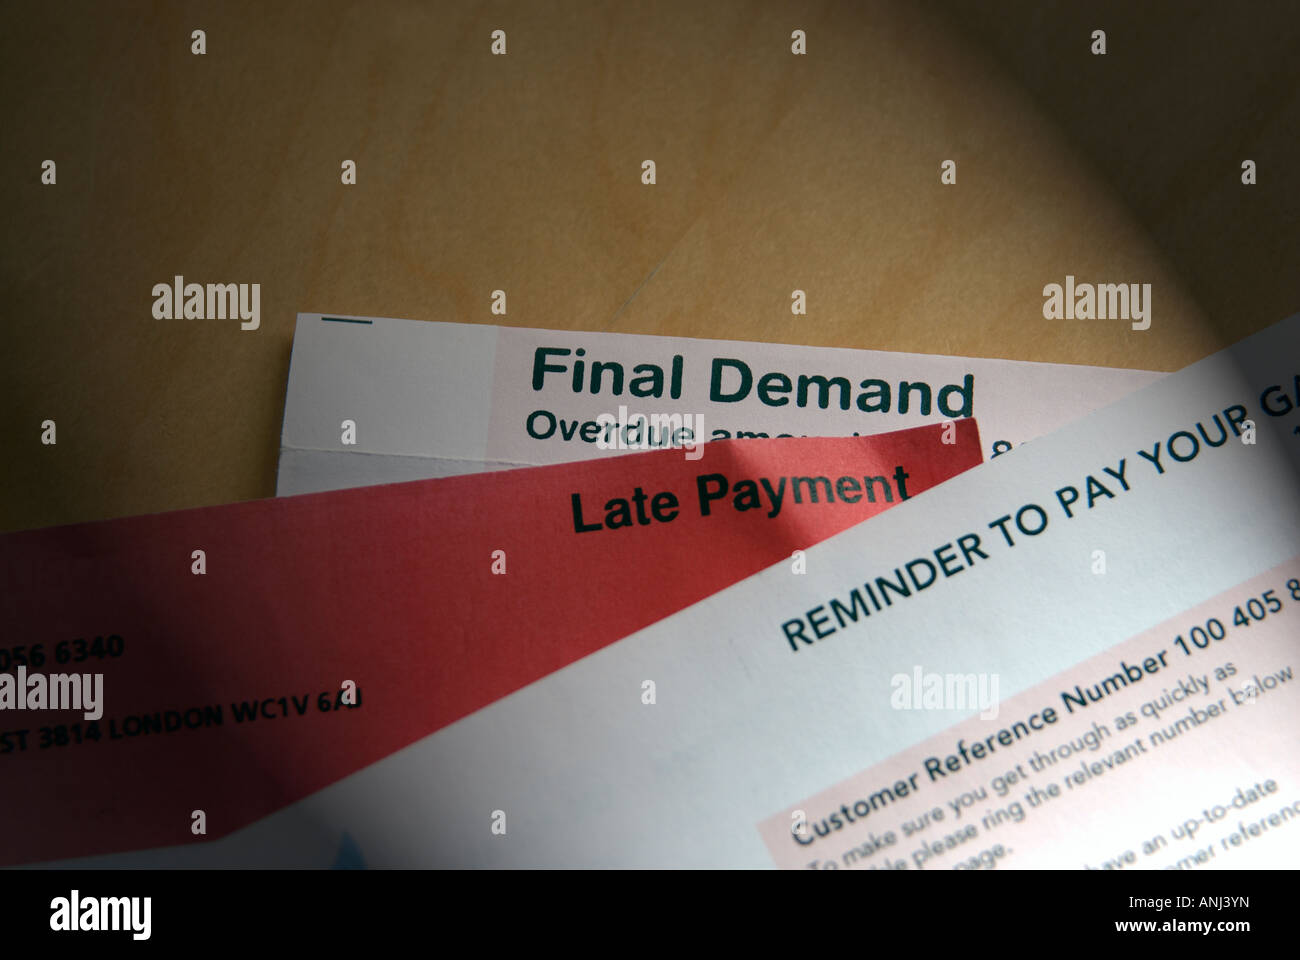 Late Payment Reminders - Stock Image